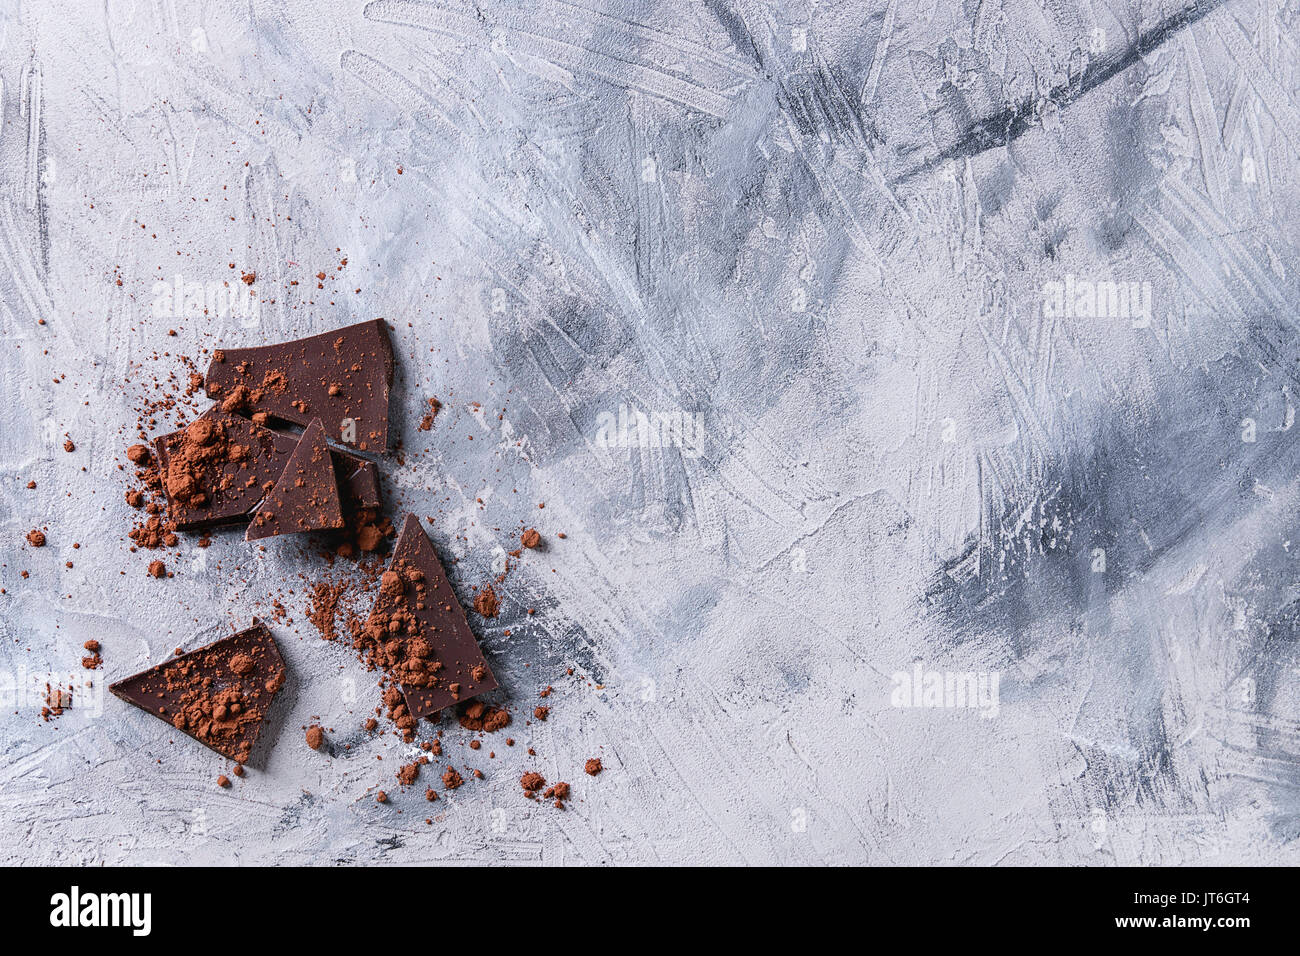 Chopped dark chocolate with cocoa powder over gray concrete texture background. Top view with copy space. - Stock Image